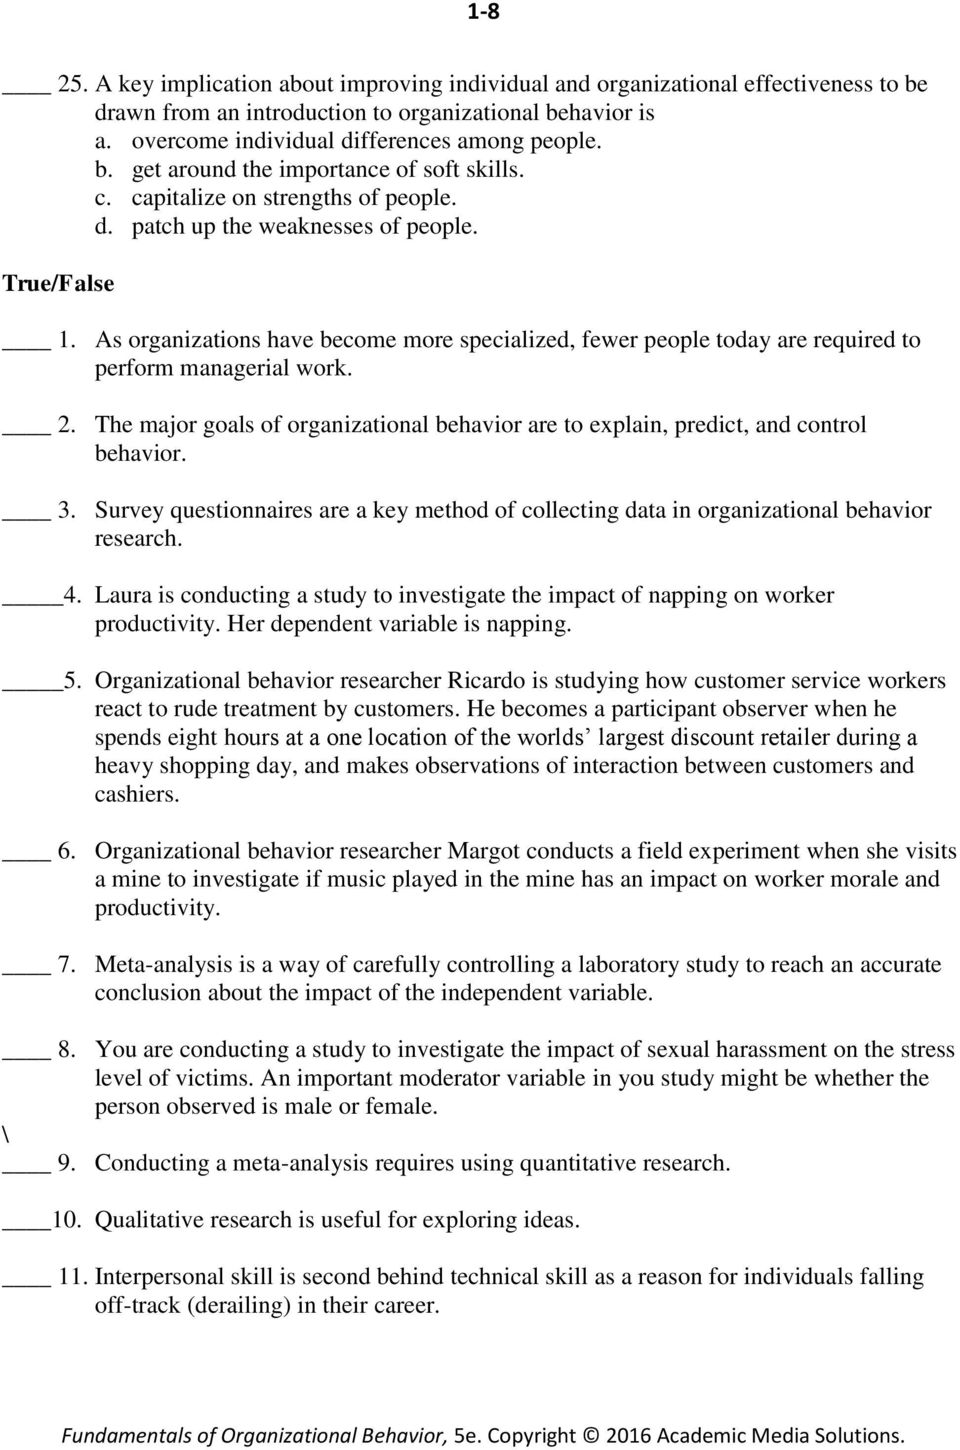 The major goals of organizational behavior are to explain, predict, and control behavior. 3. Survey questionnaires are a key method of collecting data in organizational behavior research. 4.